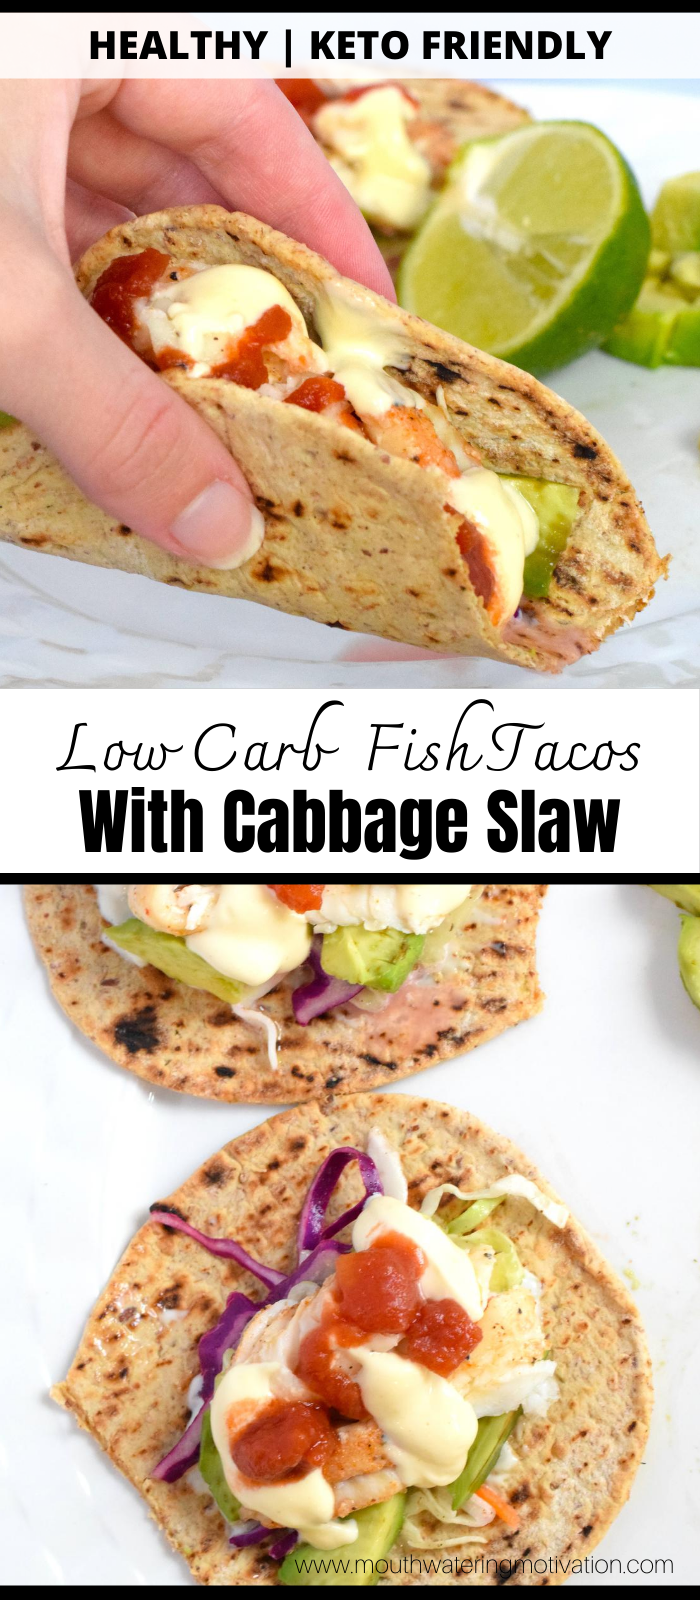 Low Carb Fish Tacos with cabbage slaw